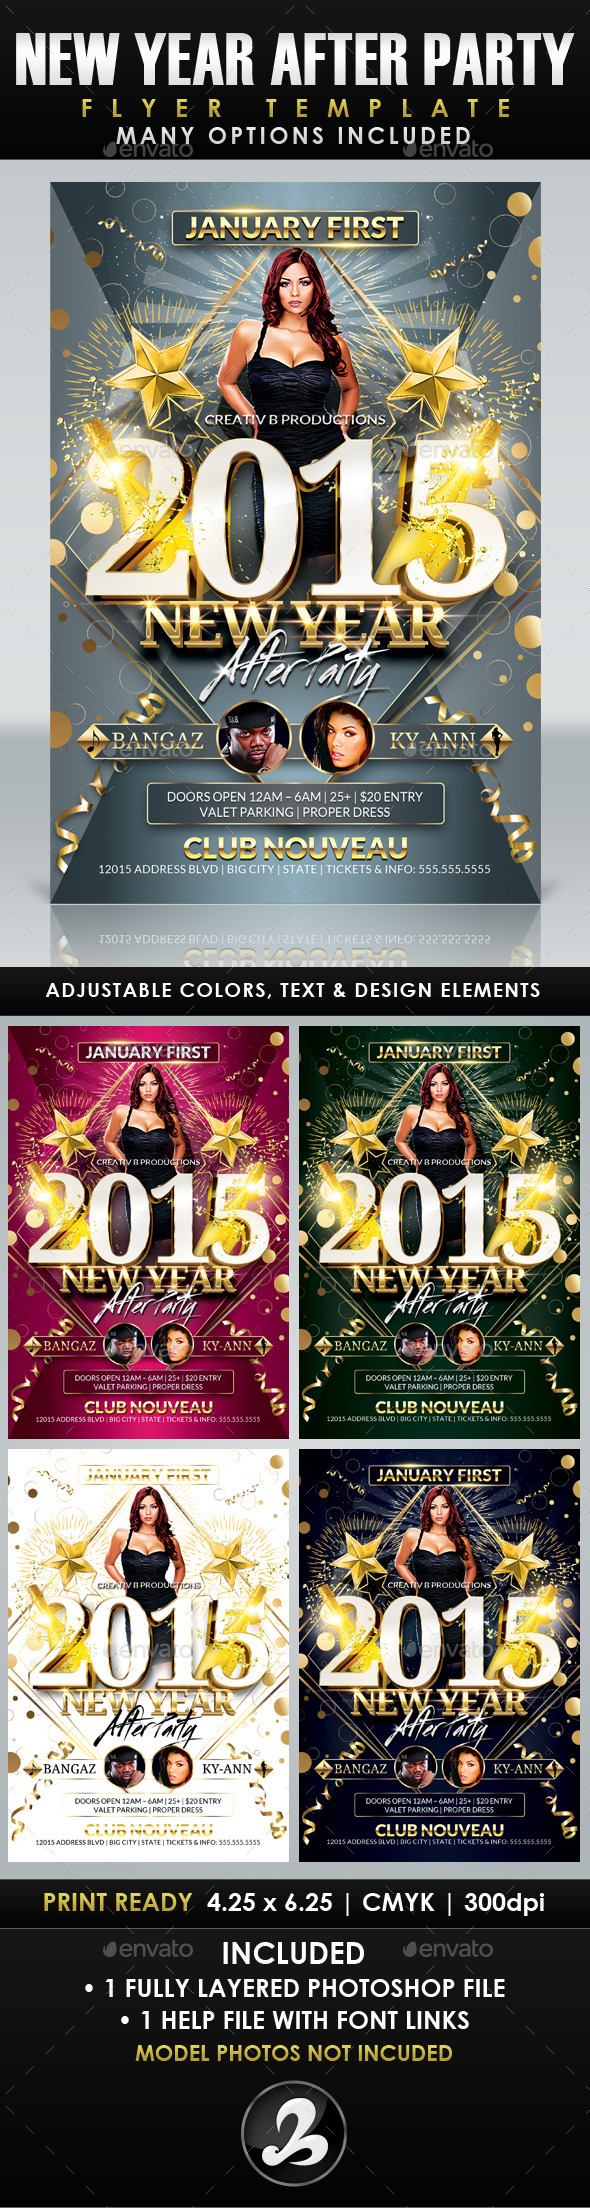 New Year After Party Flyer Template - Clubs & Parties Events